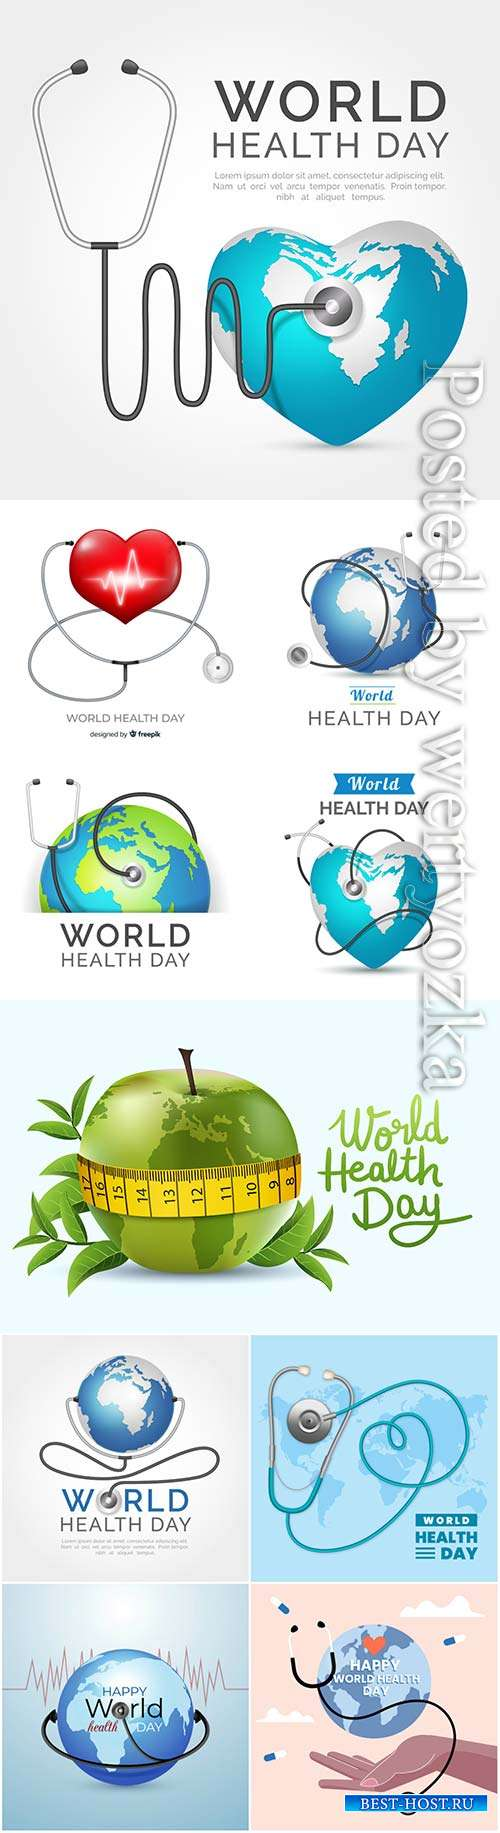 Realistic world health day vector background